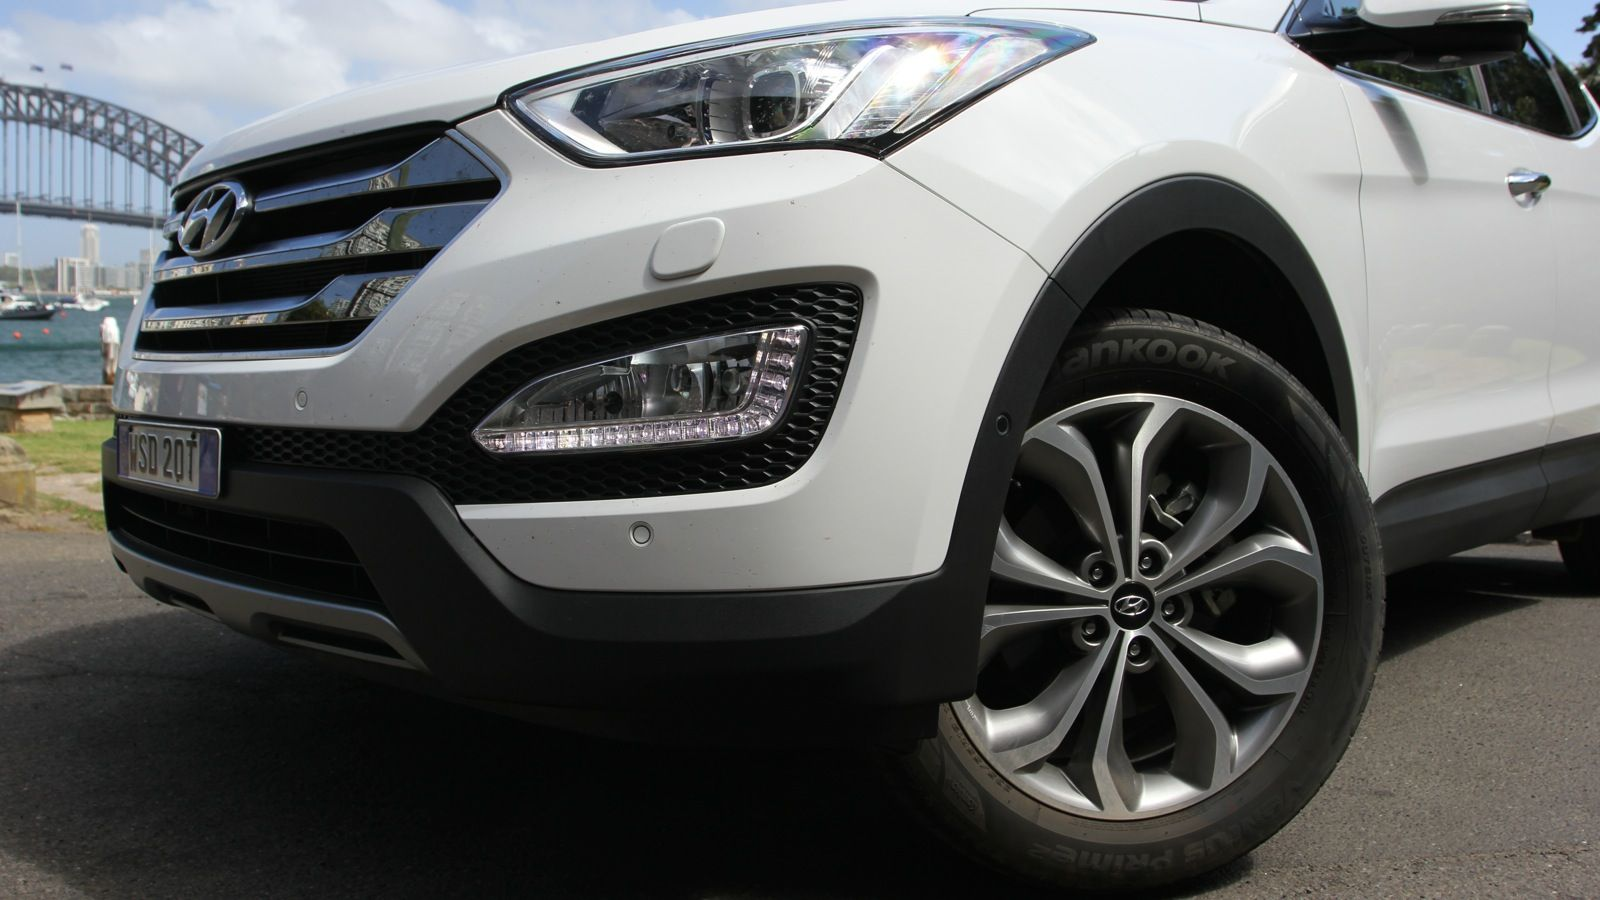 2015 Hyundai Santa Fe Limited Photo Gallery of the 2015